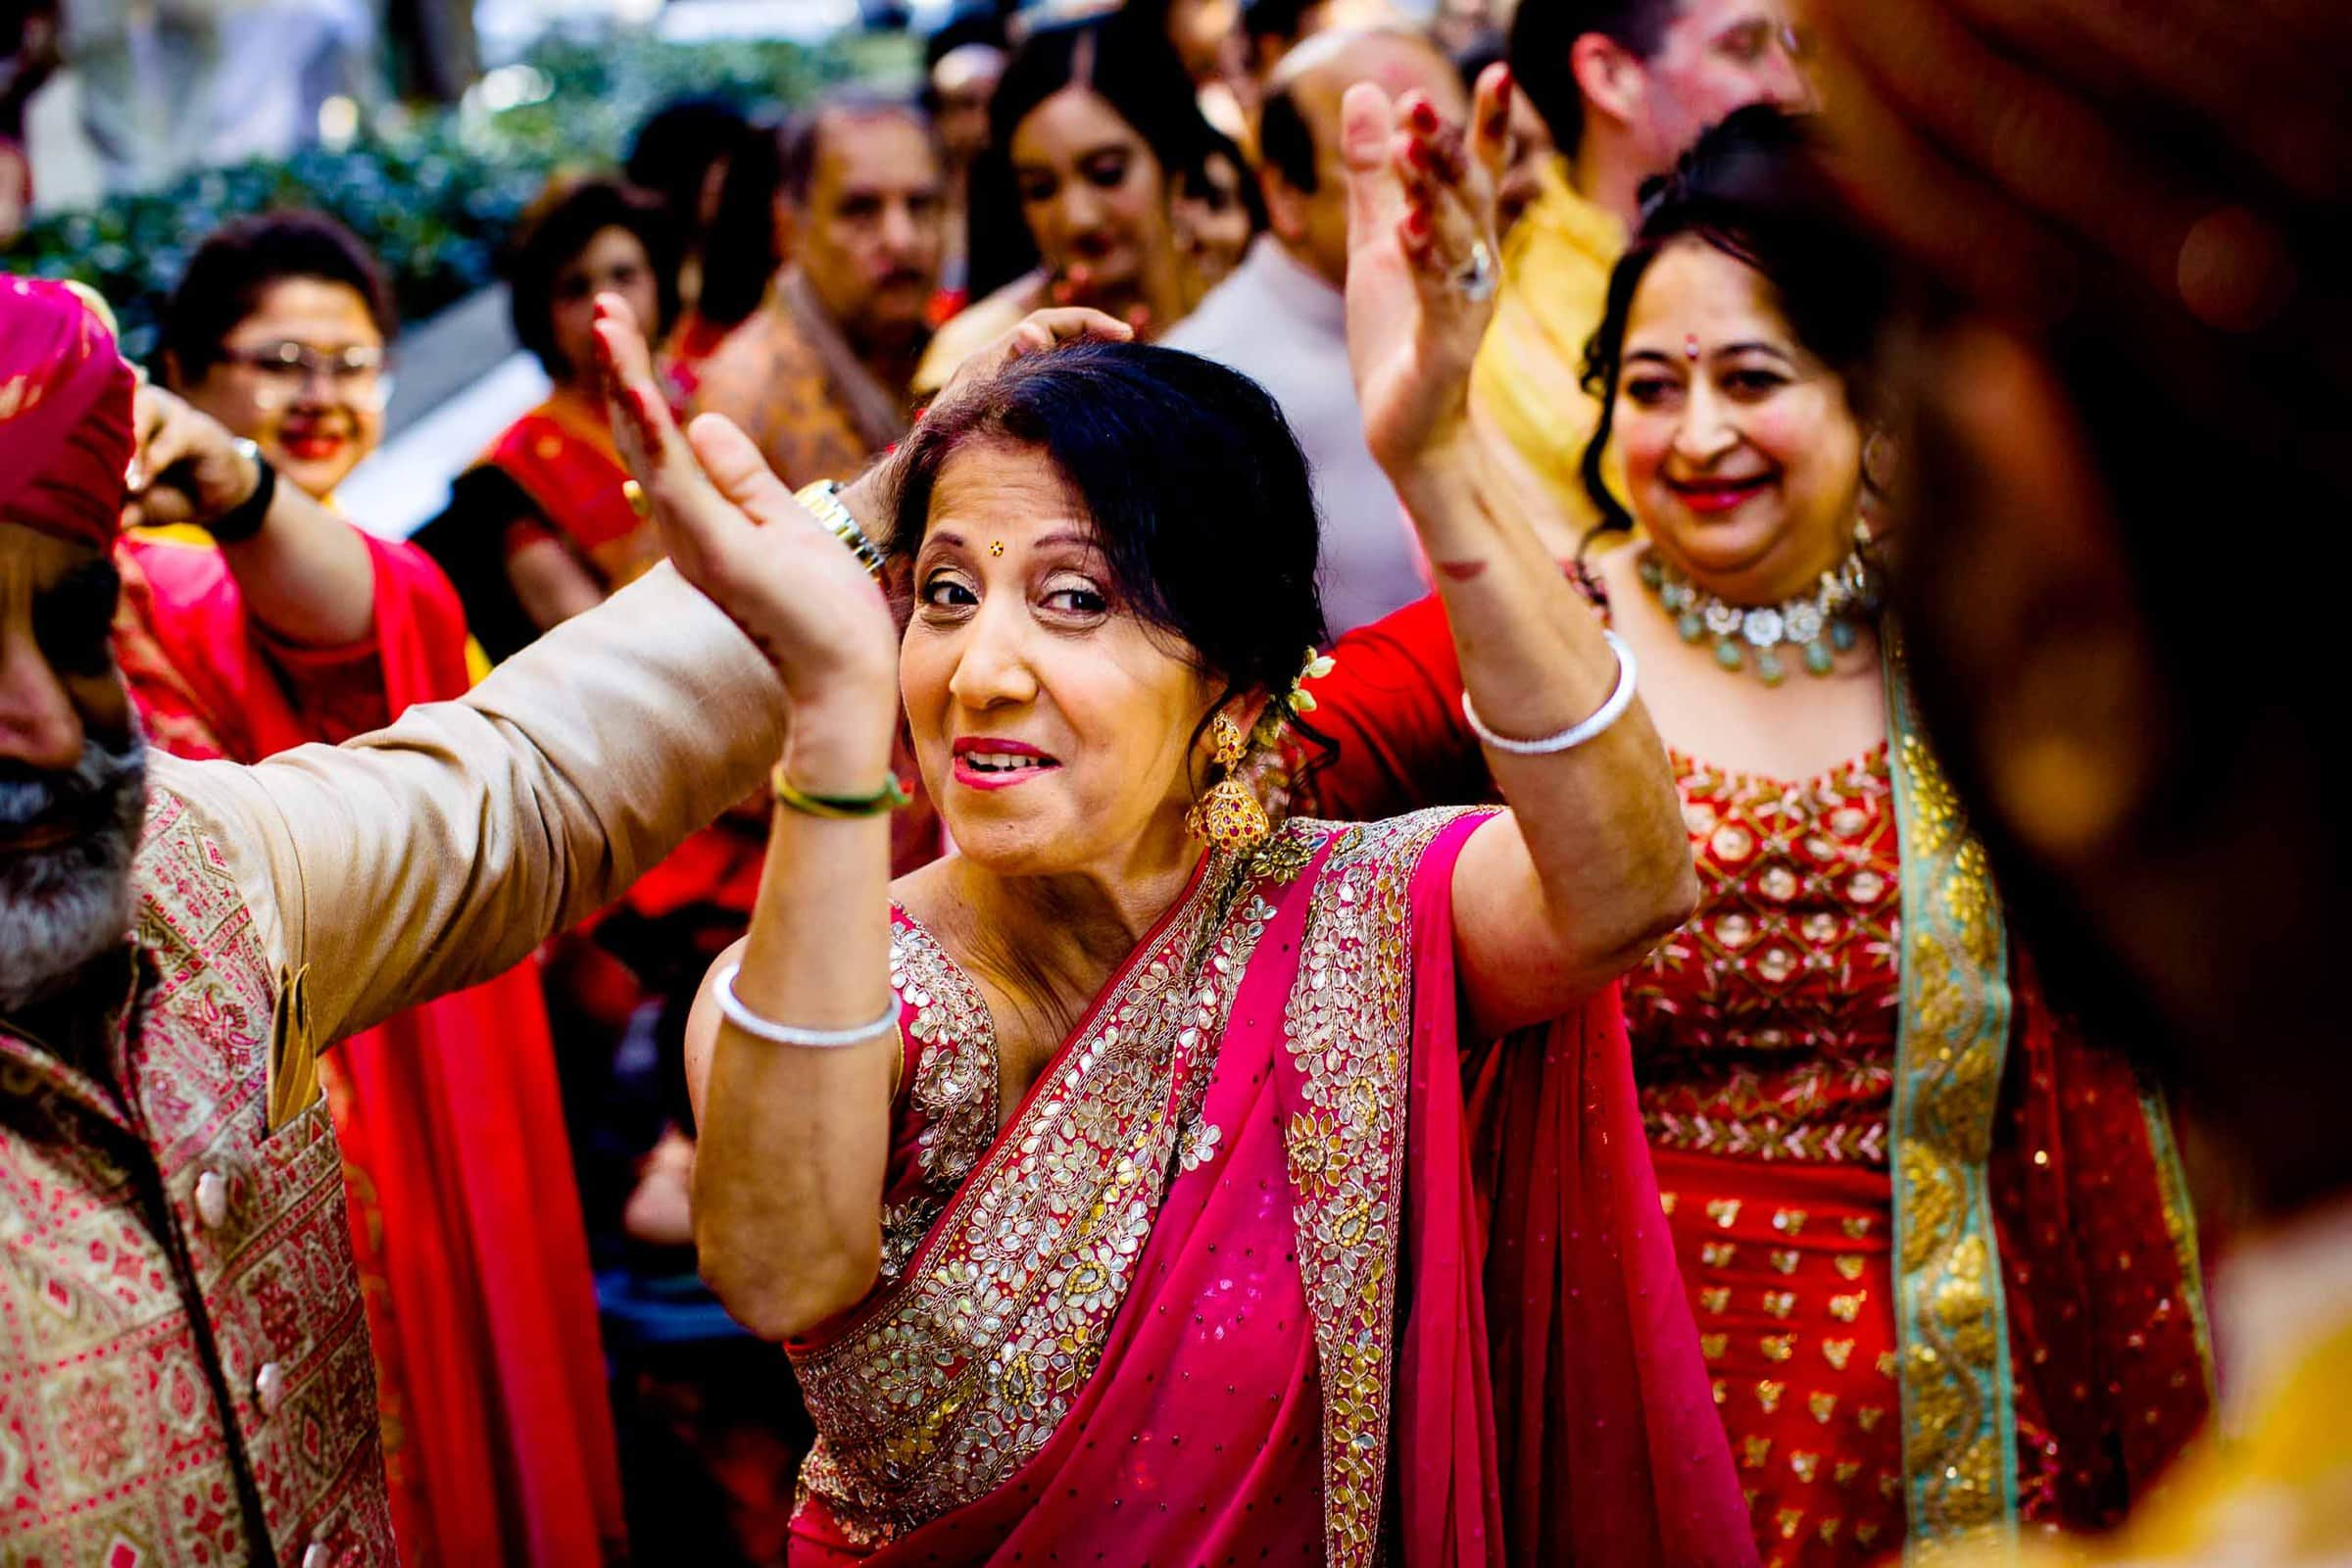 Indian wedding mother clapping and celebrating at Portland Art Museum wedding